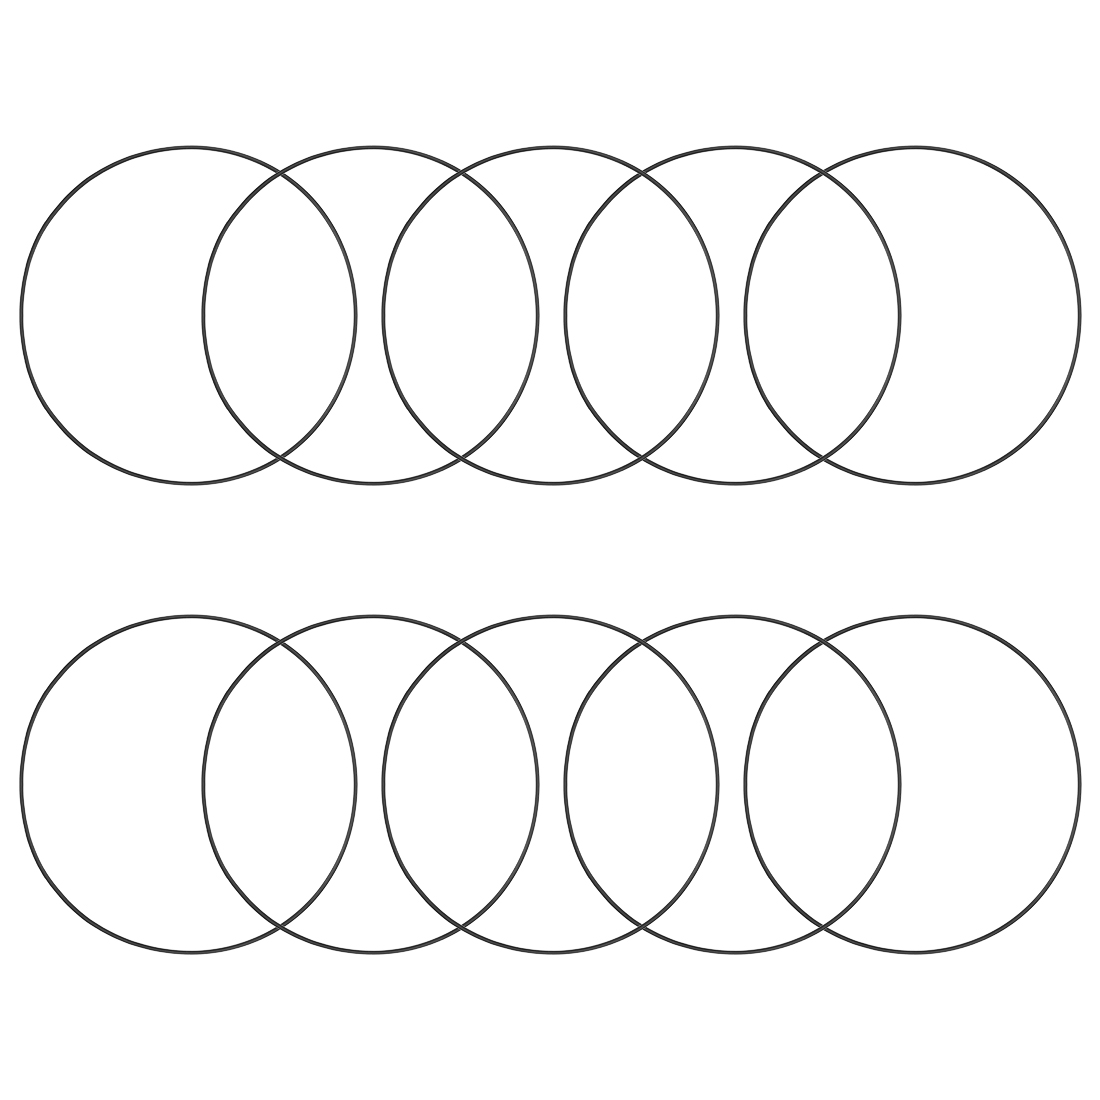 O-Rings Nitrile Rubber 175mm x 180.3mm x 2.65mm Round Seal Gasket 10 Pcs